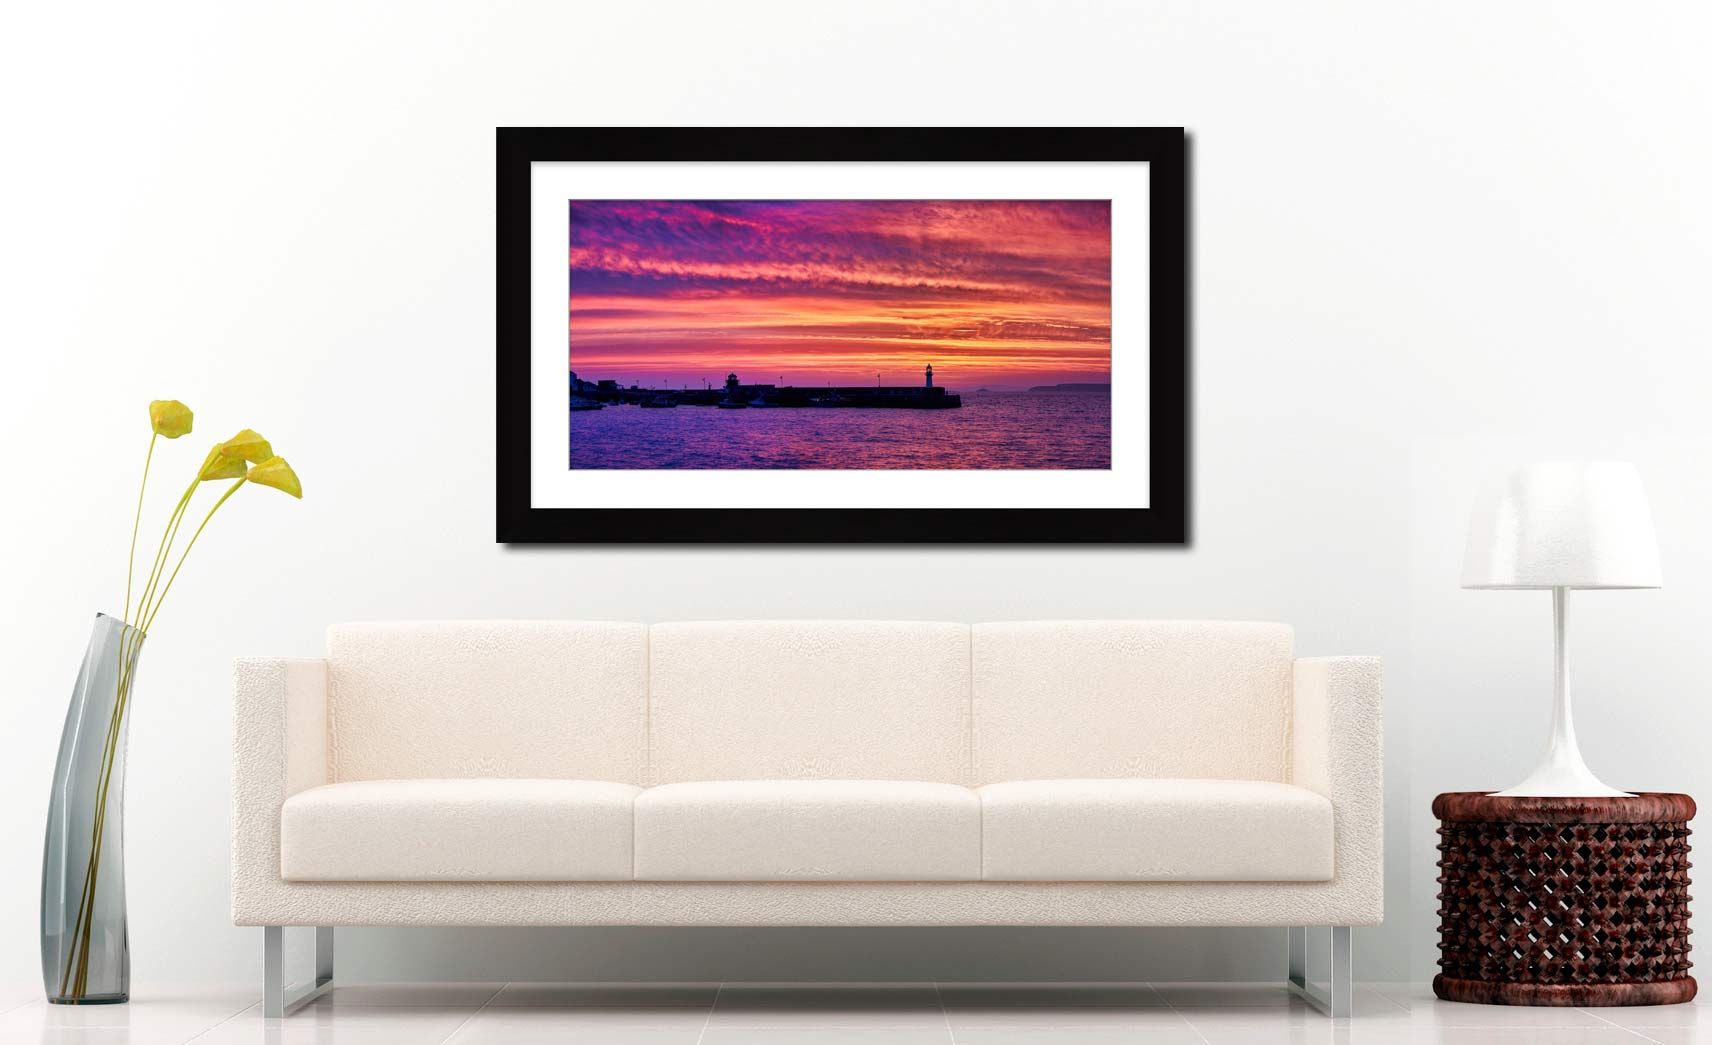 St Ives Purple Skies of Sunrise - Framed Print with Mount on Wall